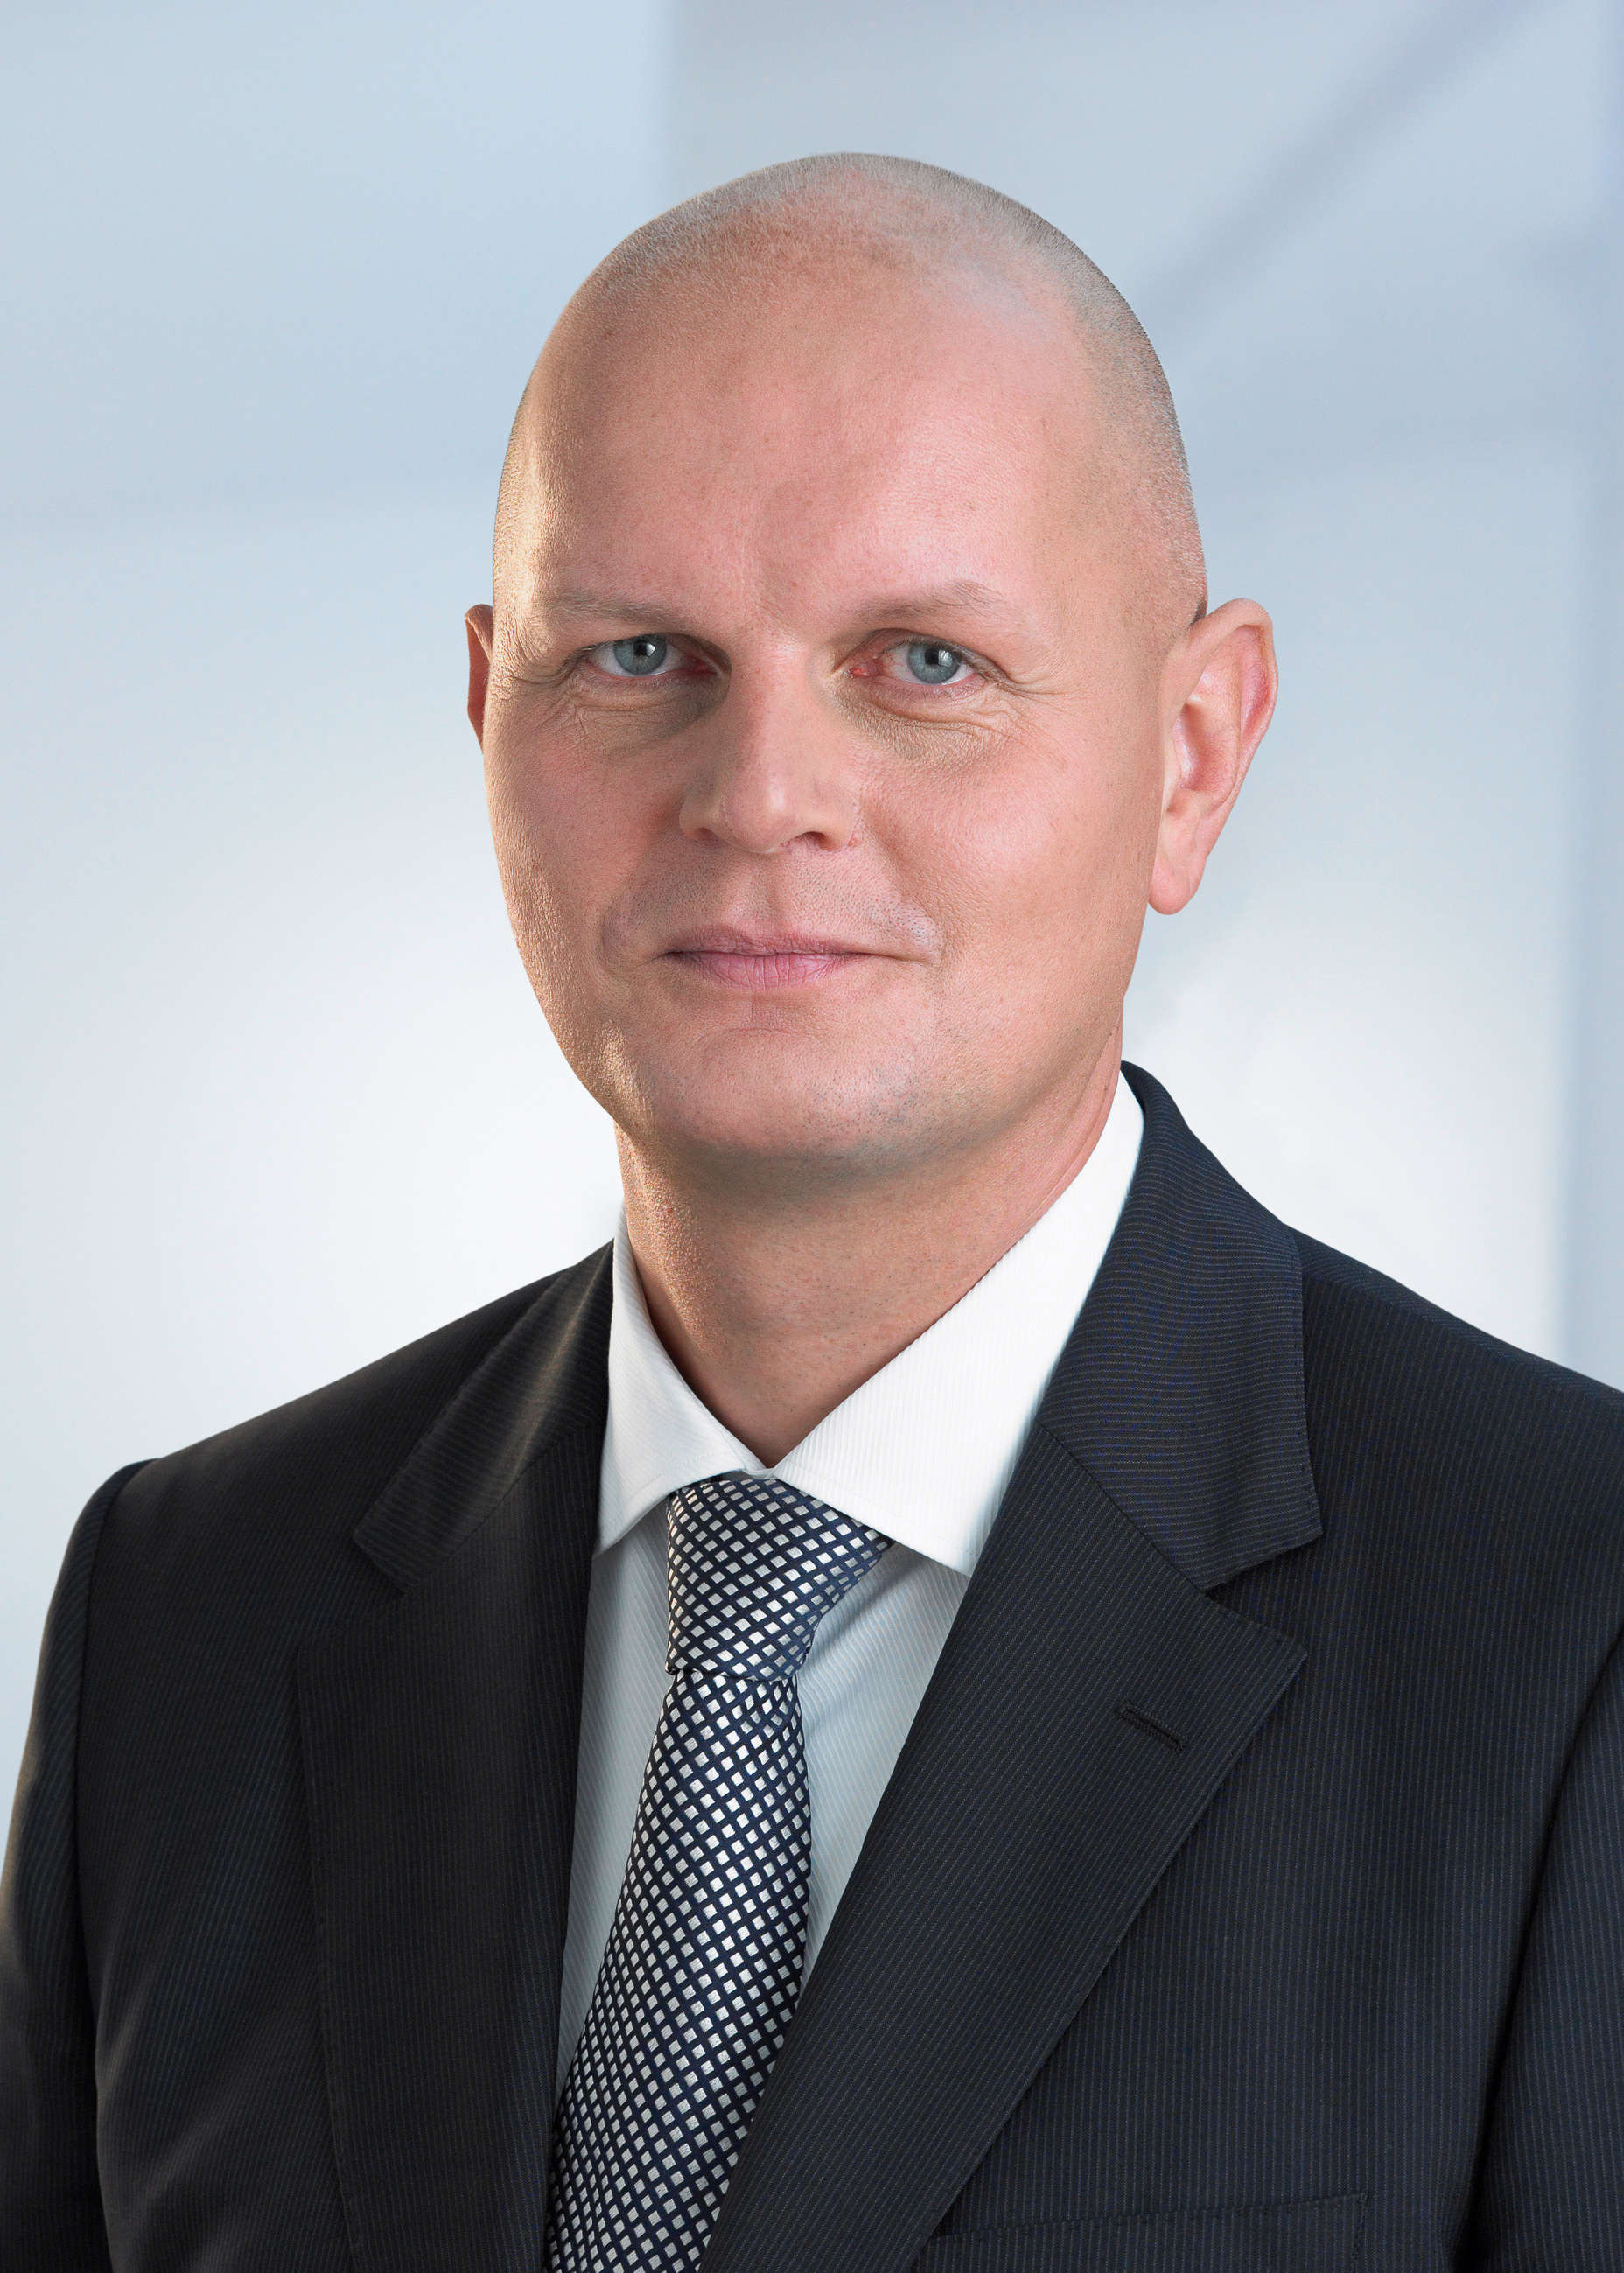 Olaf Koch, Chairman of the Management Board of METRO AG